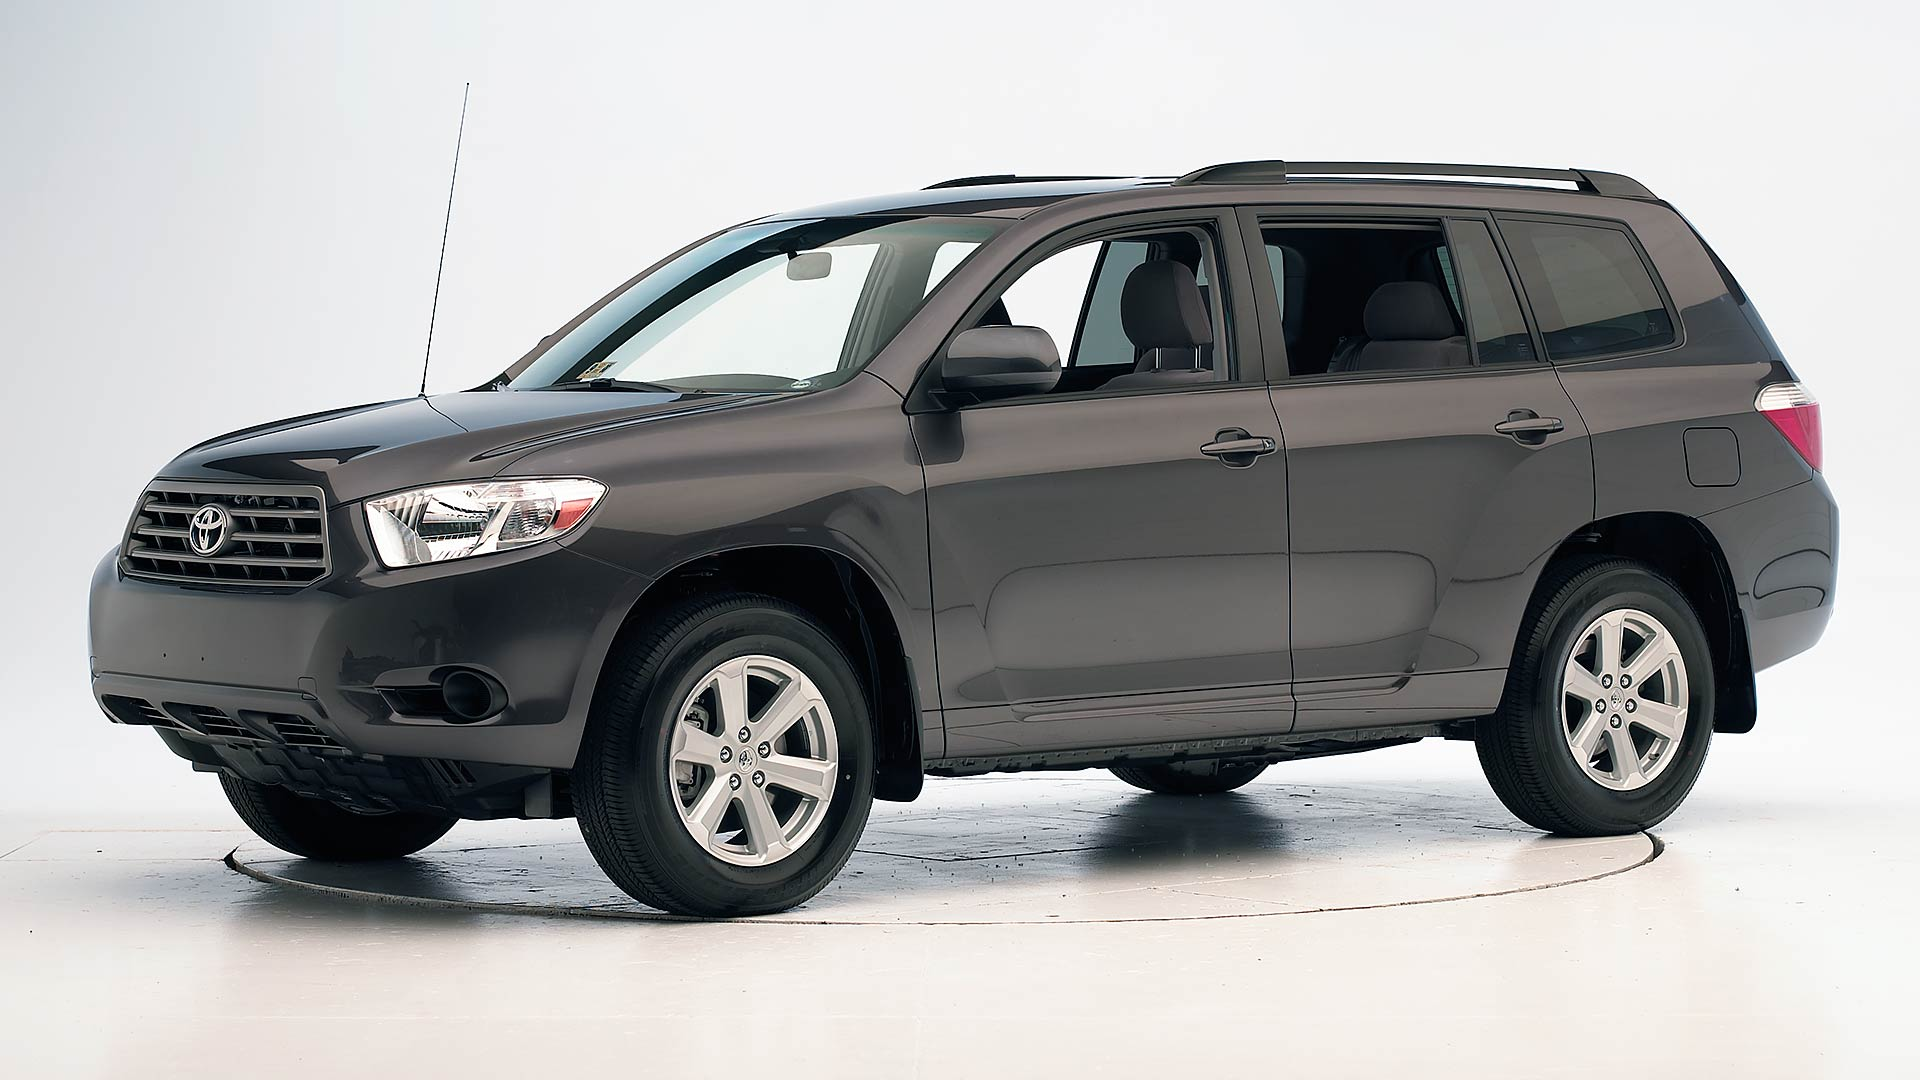 2009 Toyota Highlander 4-door SUV